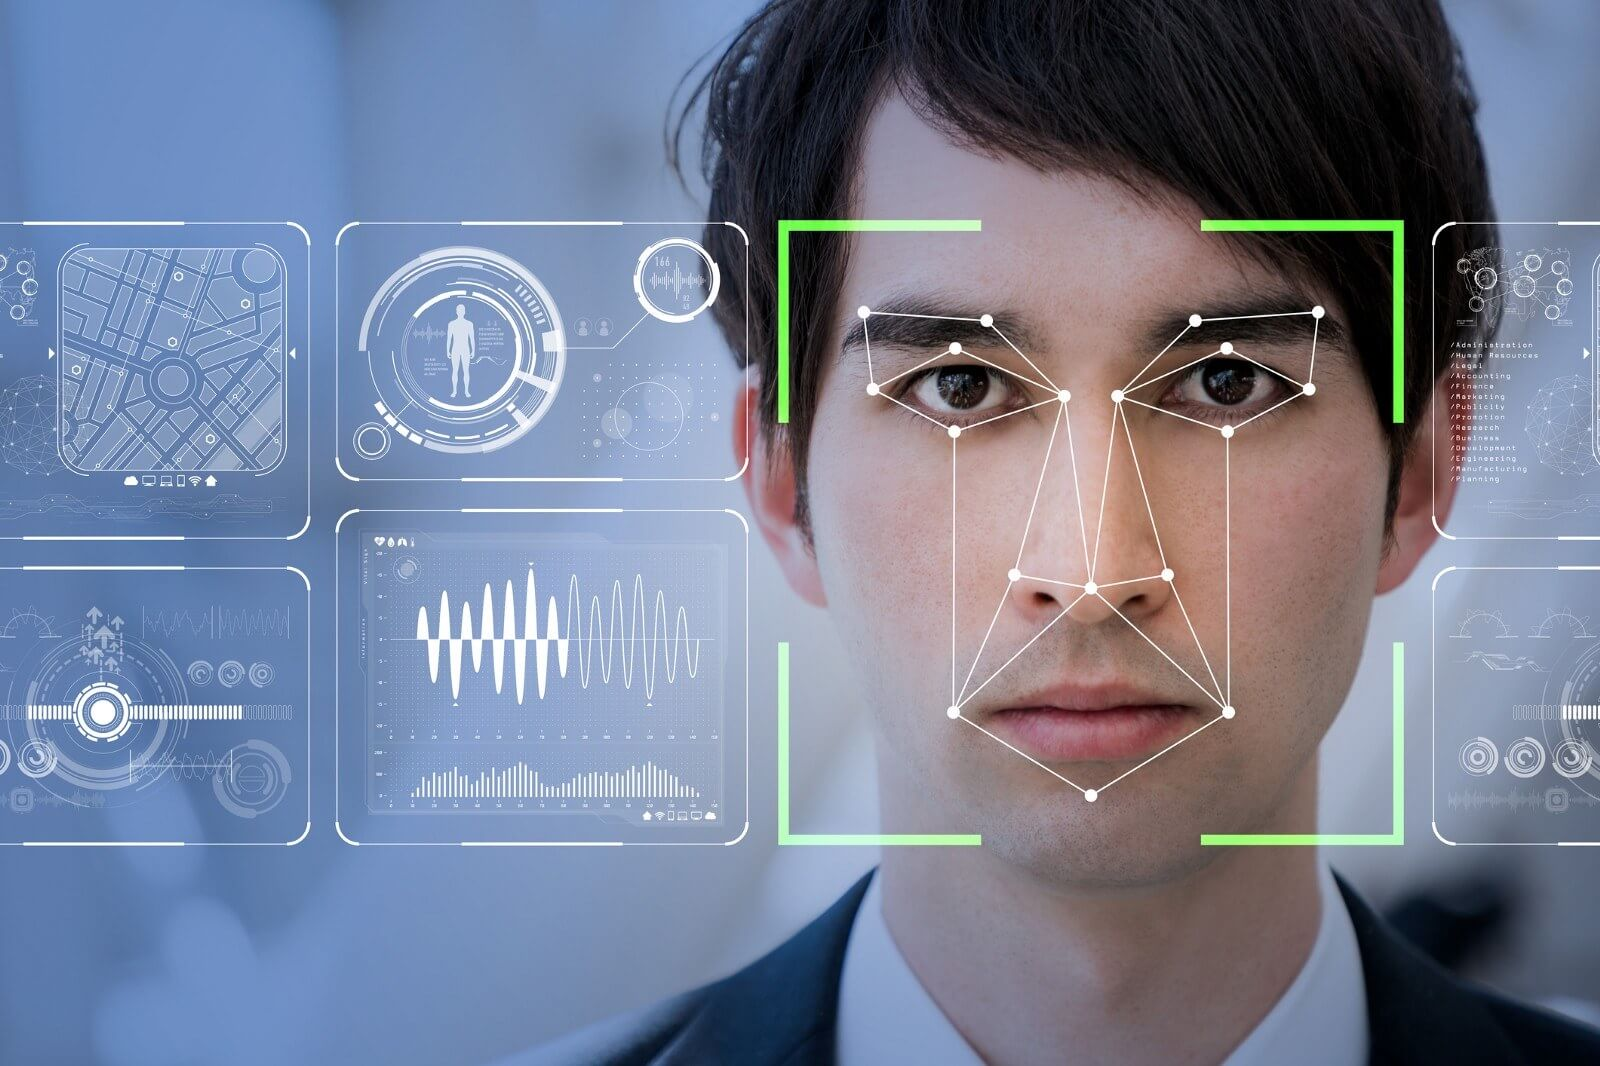 The 10 Year Challenge may be an elaborate data collection plan to train facial recognition algorithms